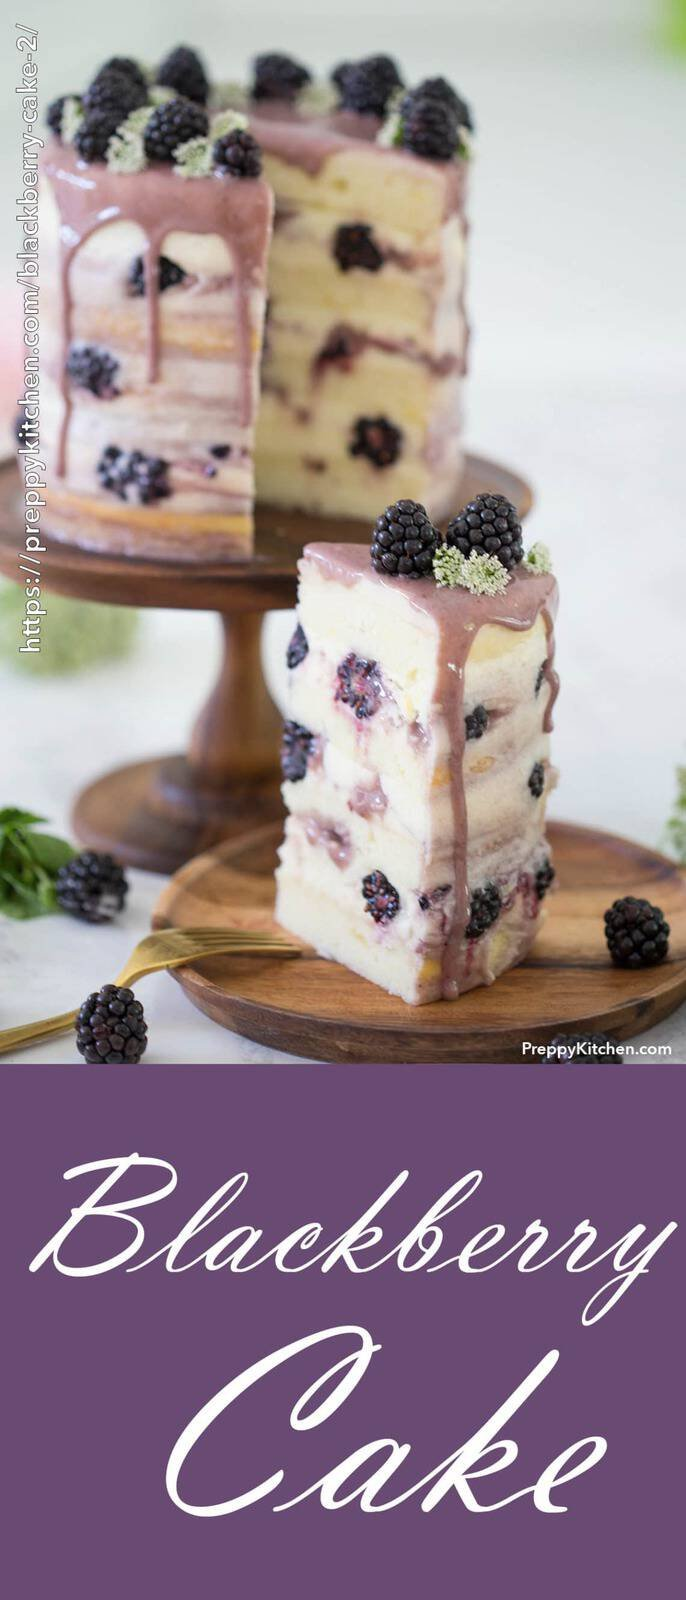 A piece of cake with fresh blackberries, mascarpone buttercream and flowers